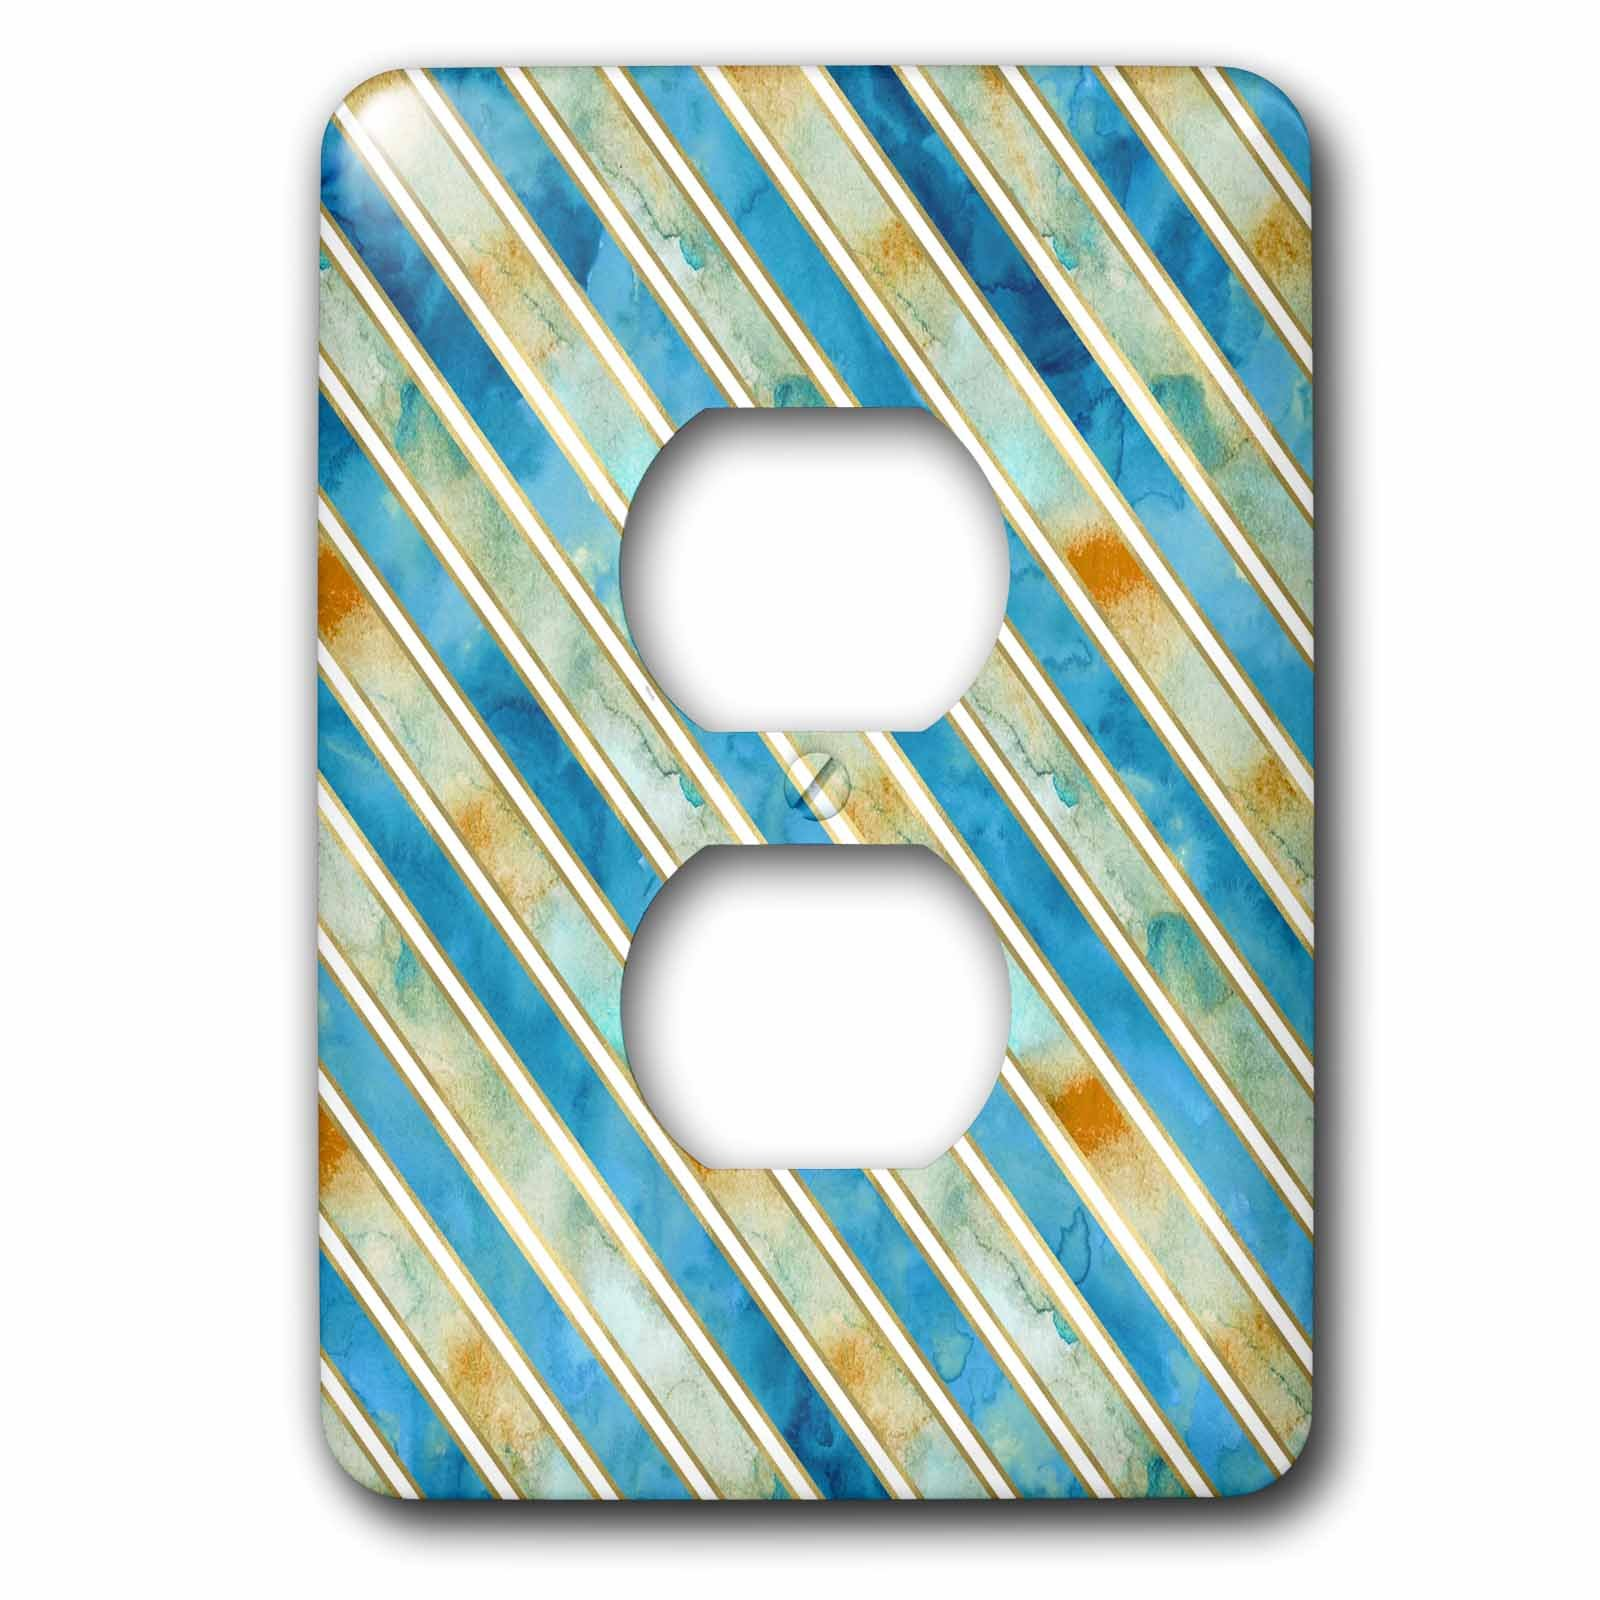 3dRose PS Chic - Image of Aqua Bronze Abstract Stripes - Light Switch Covers - 2 plug outlet cover (lsp_274230_6)